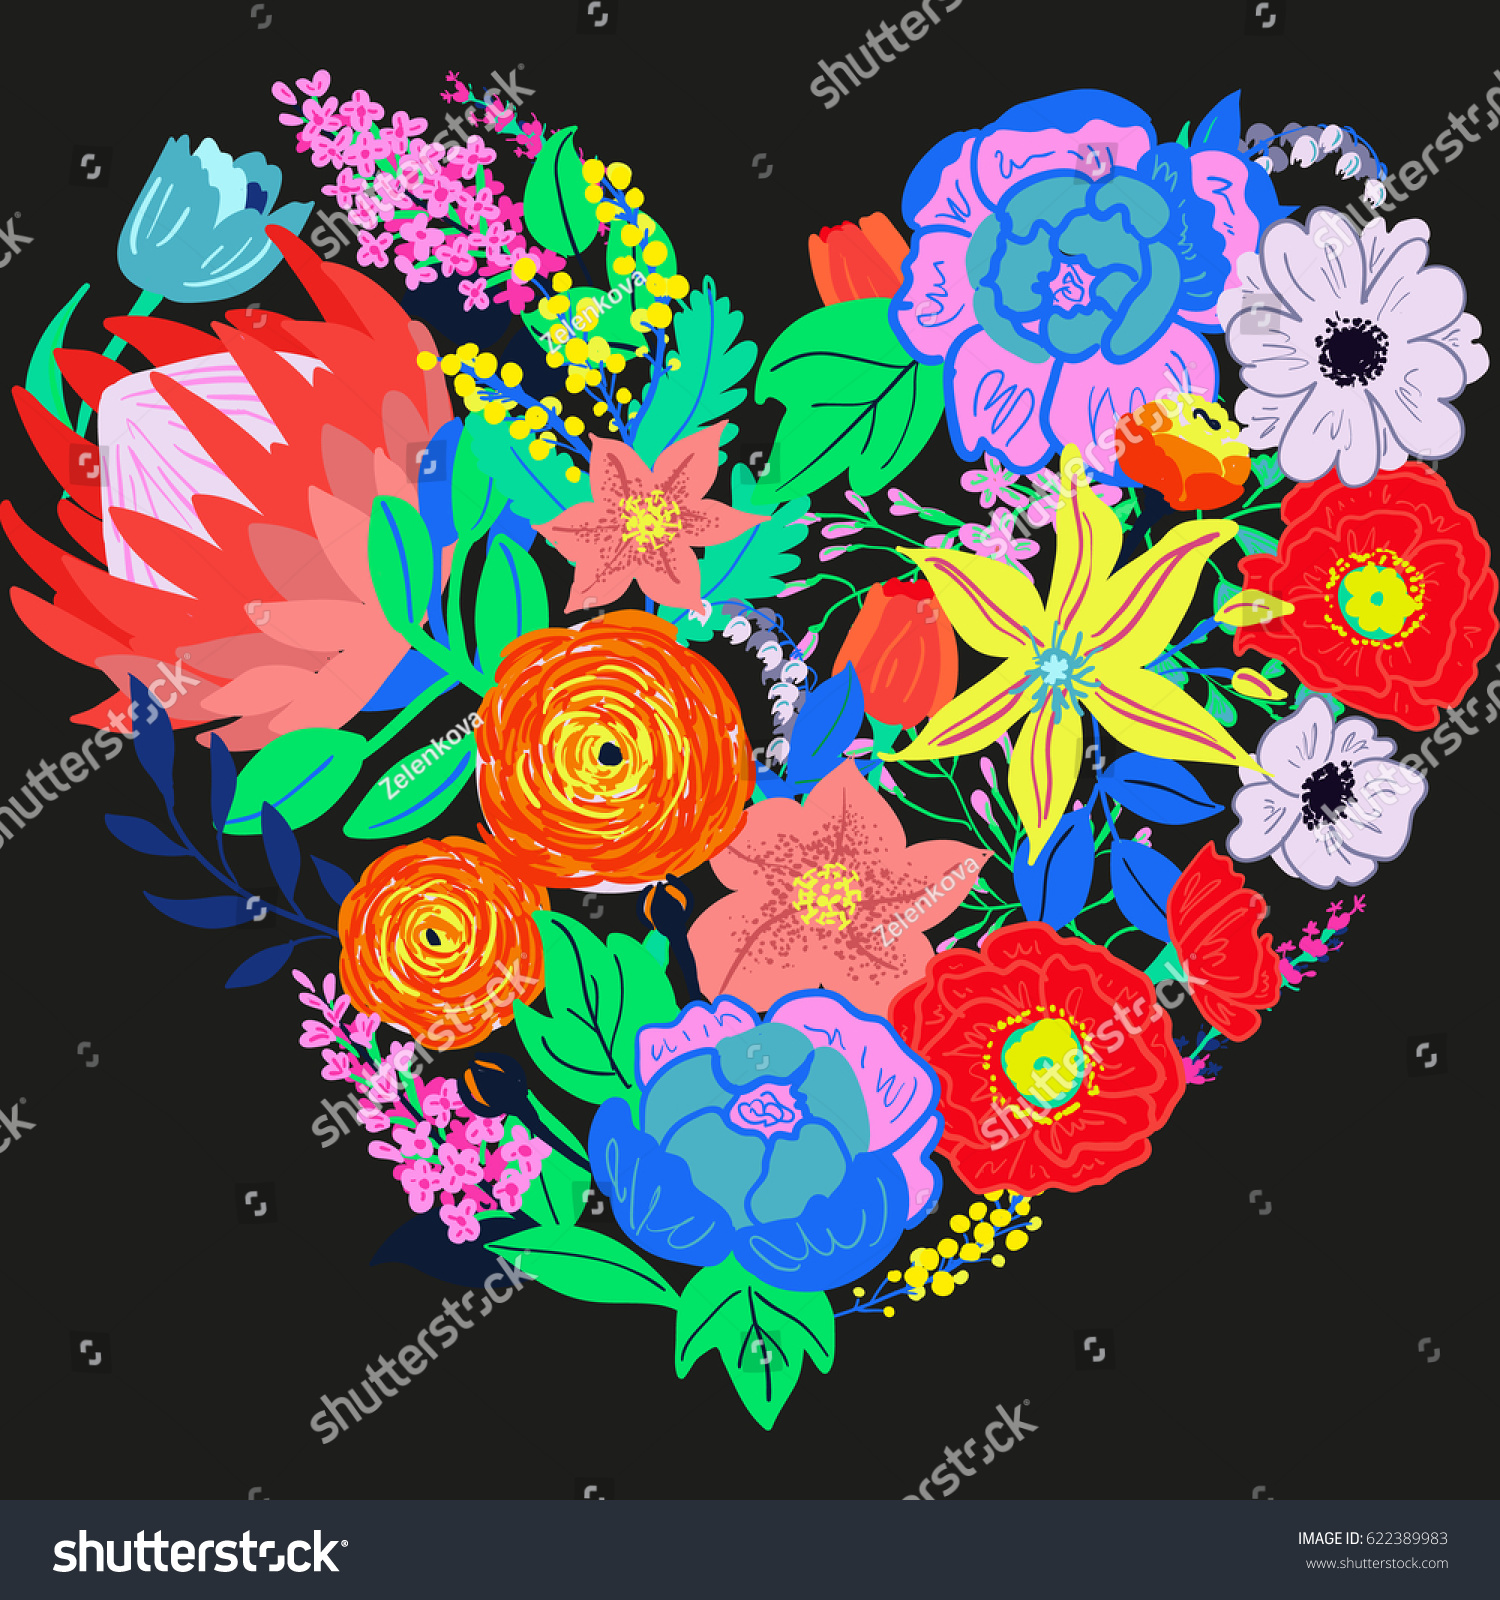 Vector Rustic Flowers Composition Bright Spring Bouquet Heart Shaped Hand Drawn Crazy Vibrant